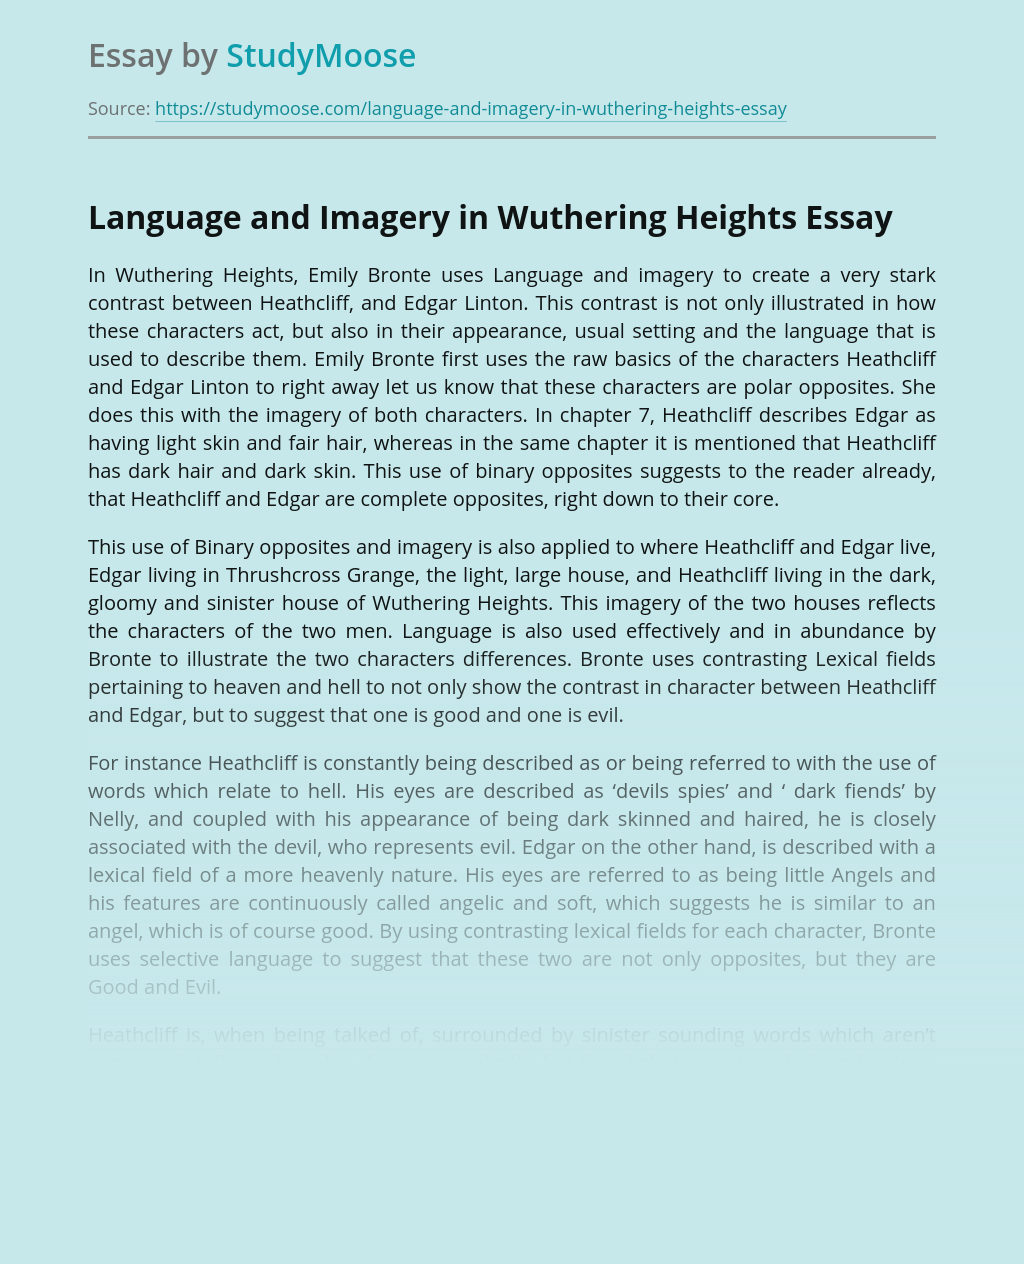 Language and Imagery in Wuthering Heights